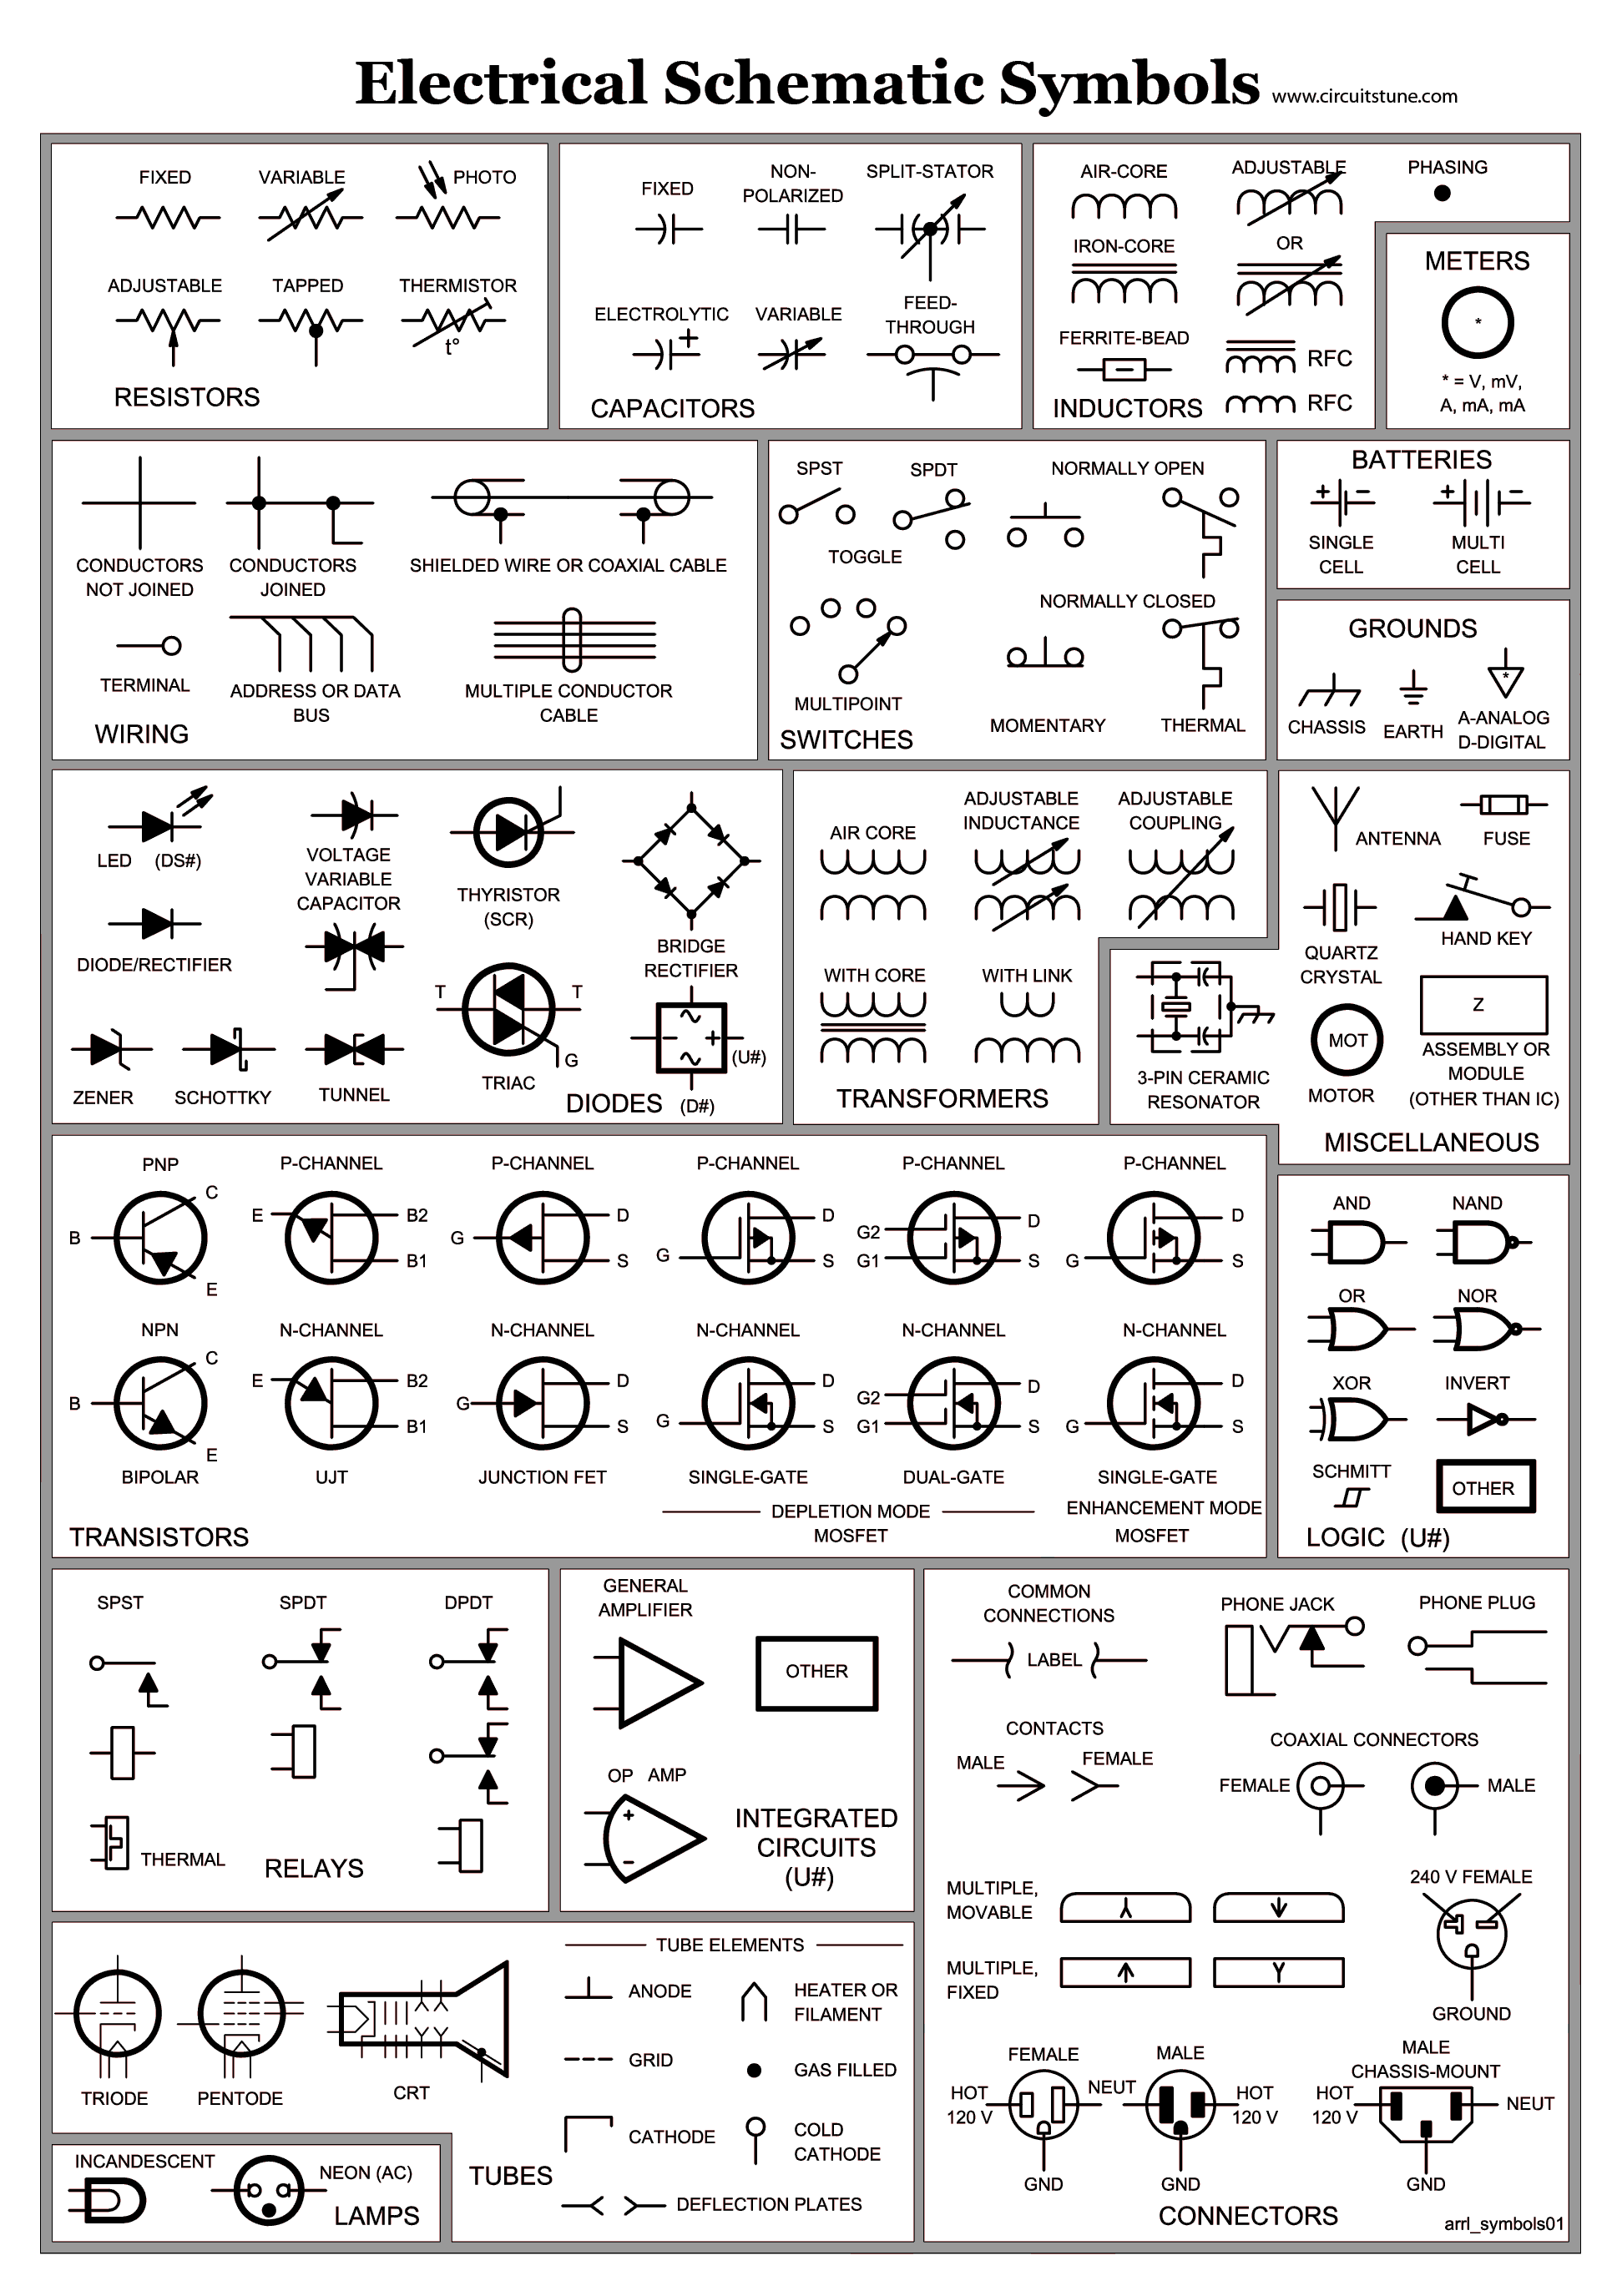 electrical schematic symbols wire diagram symbols automotive wiring rh pinterest co uk Simple Electrical Schematic electrical schematic terminology